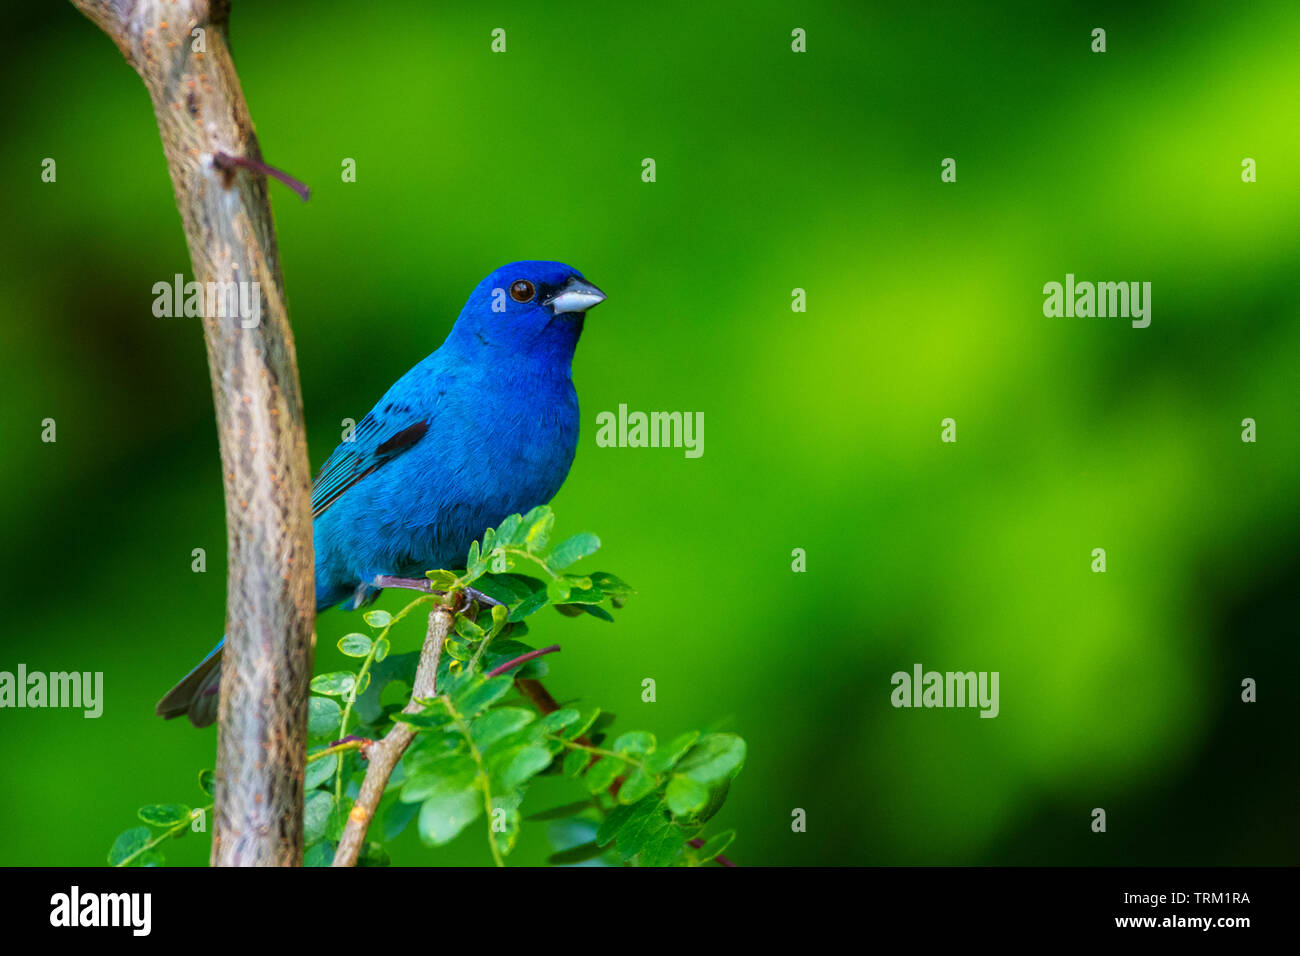 An Indigo bunting poses on the branch of a sapling honeylocust. Stock Photo